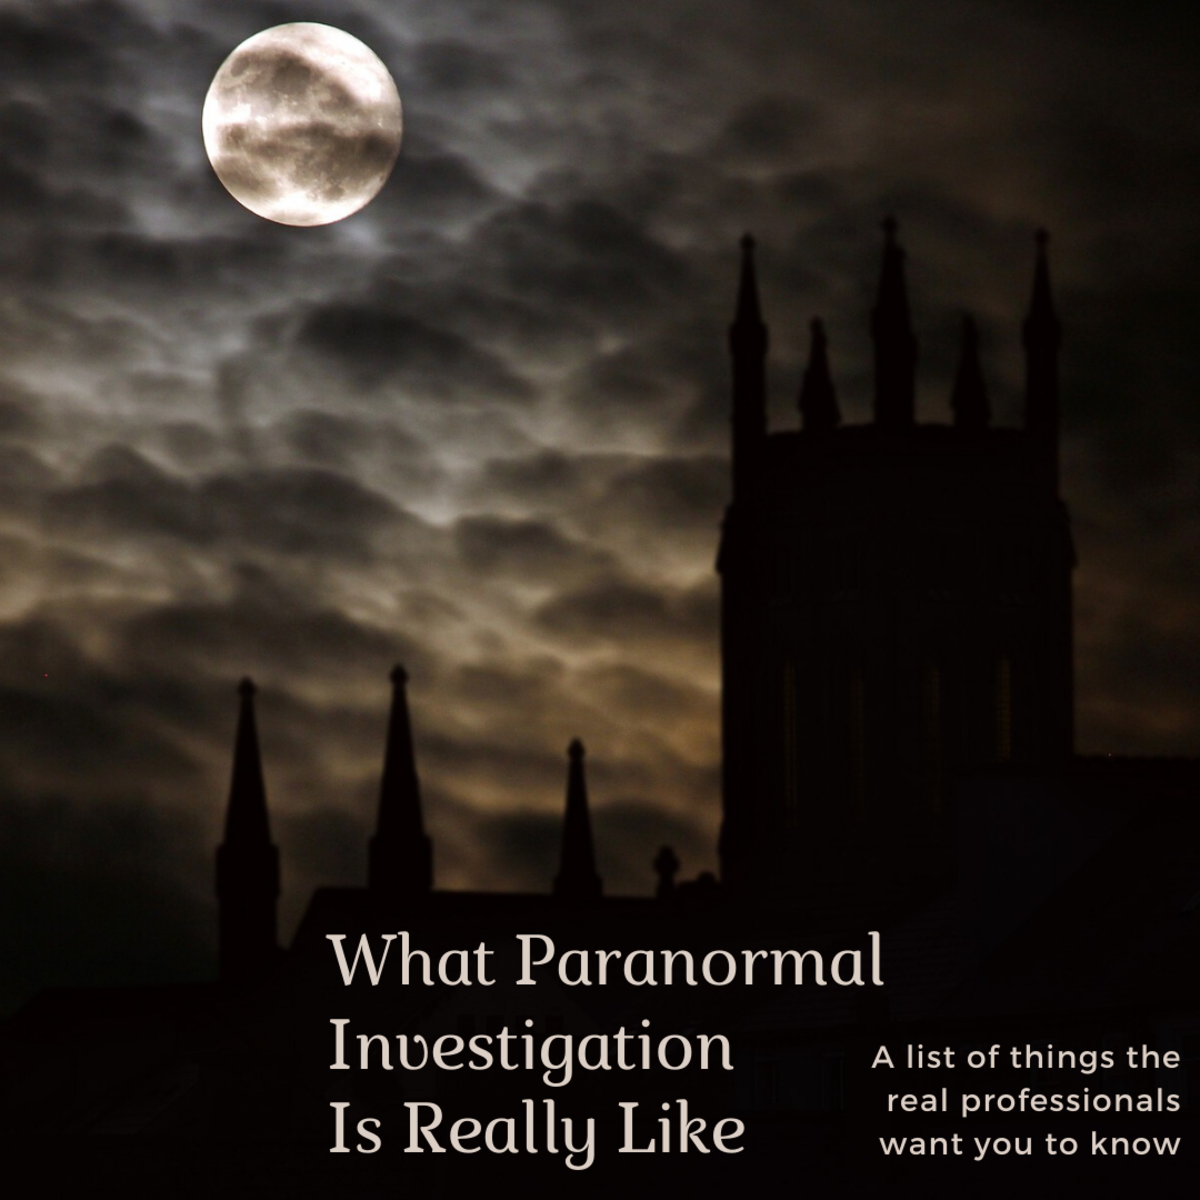 10 Things Paranormal Investigators Want You to Know